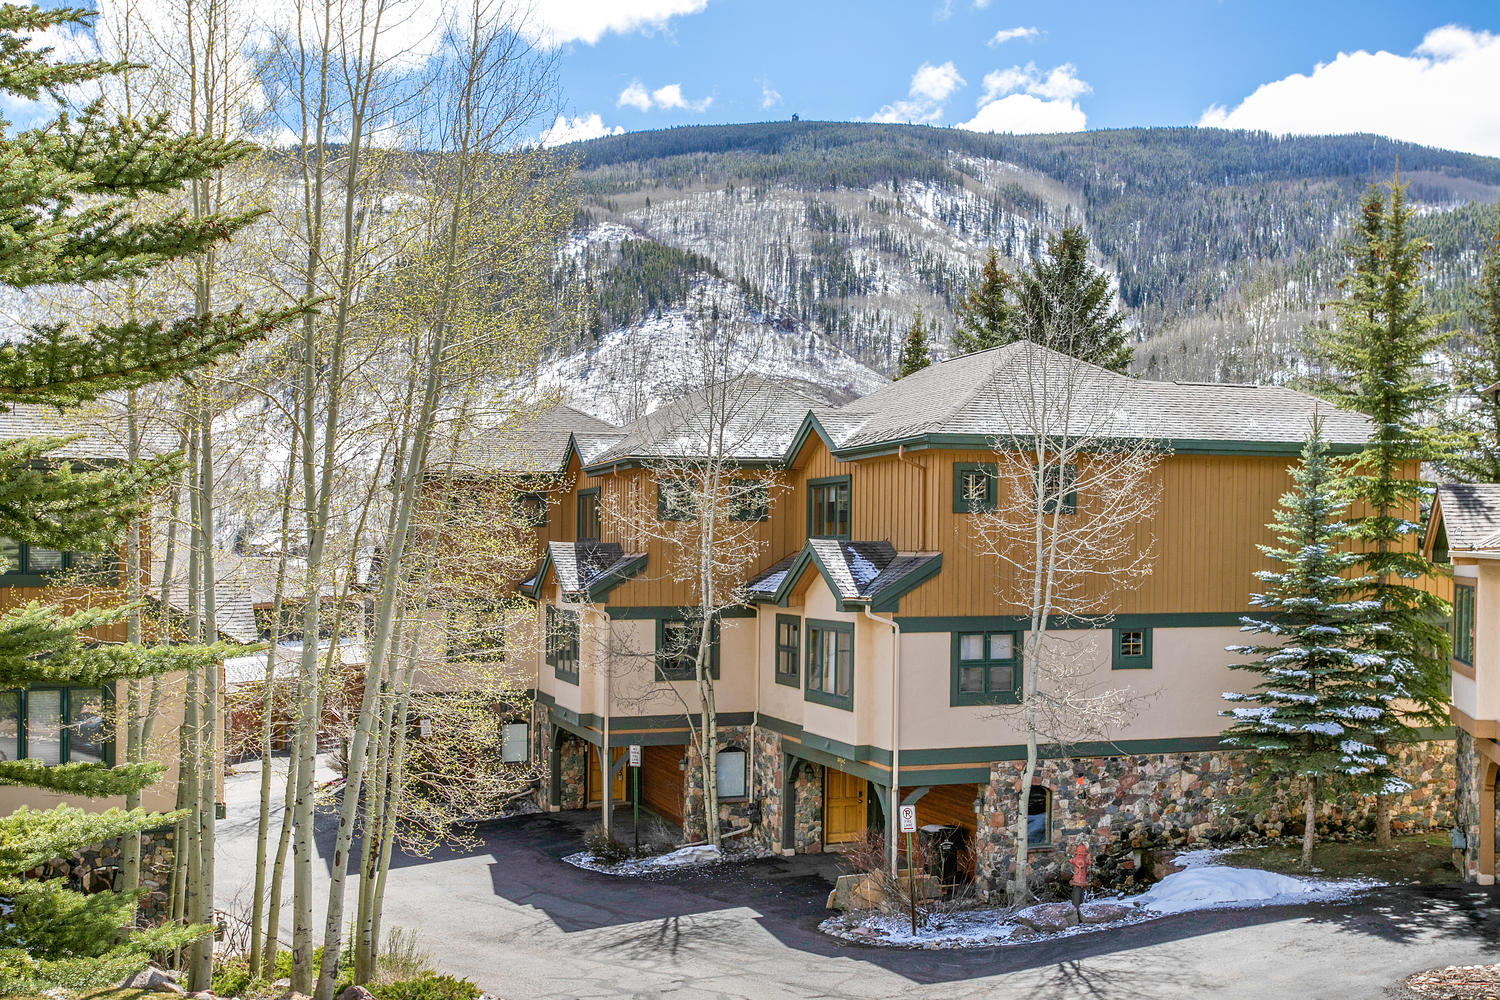 Townhouse for Sale at Chateau Tremonte #5 1890 Lions Ridge Loop #5 Sandstone, Vail, Colorado, 81657 United States